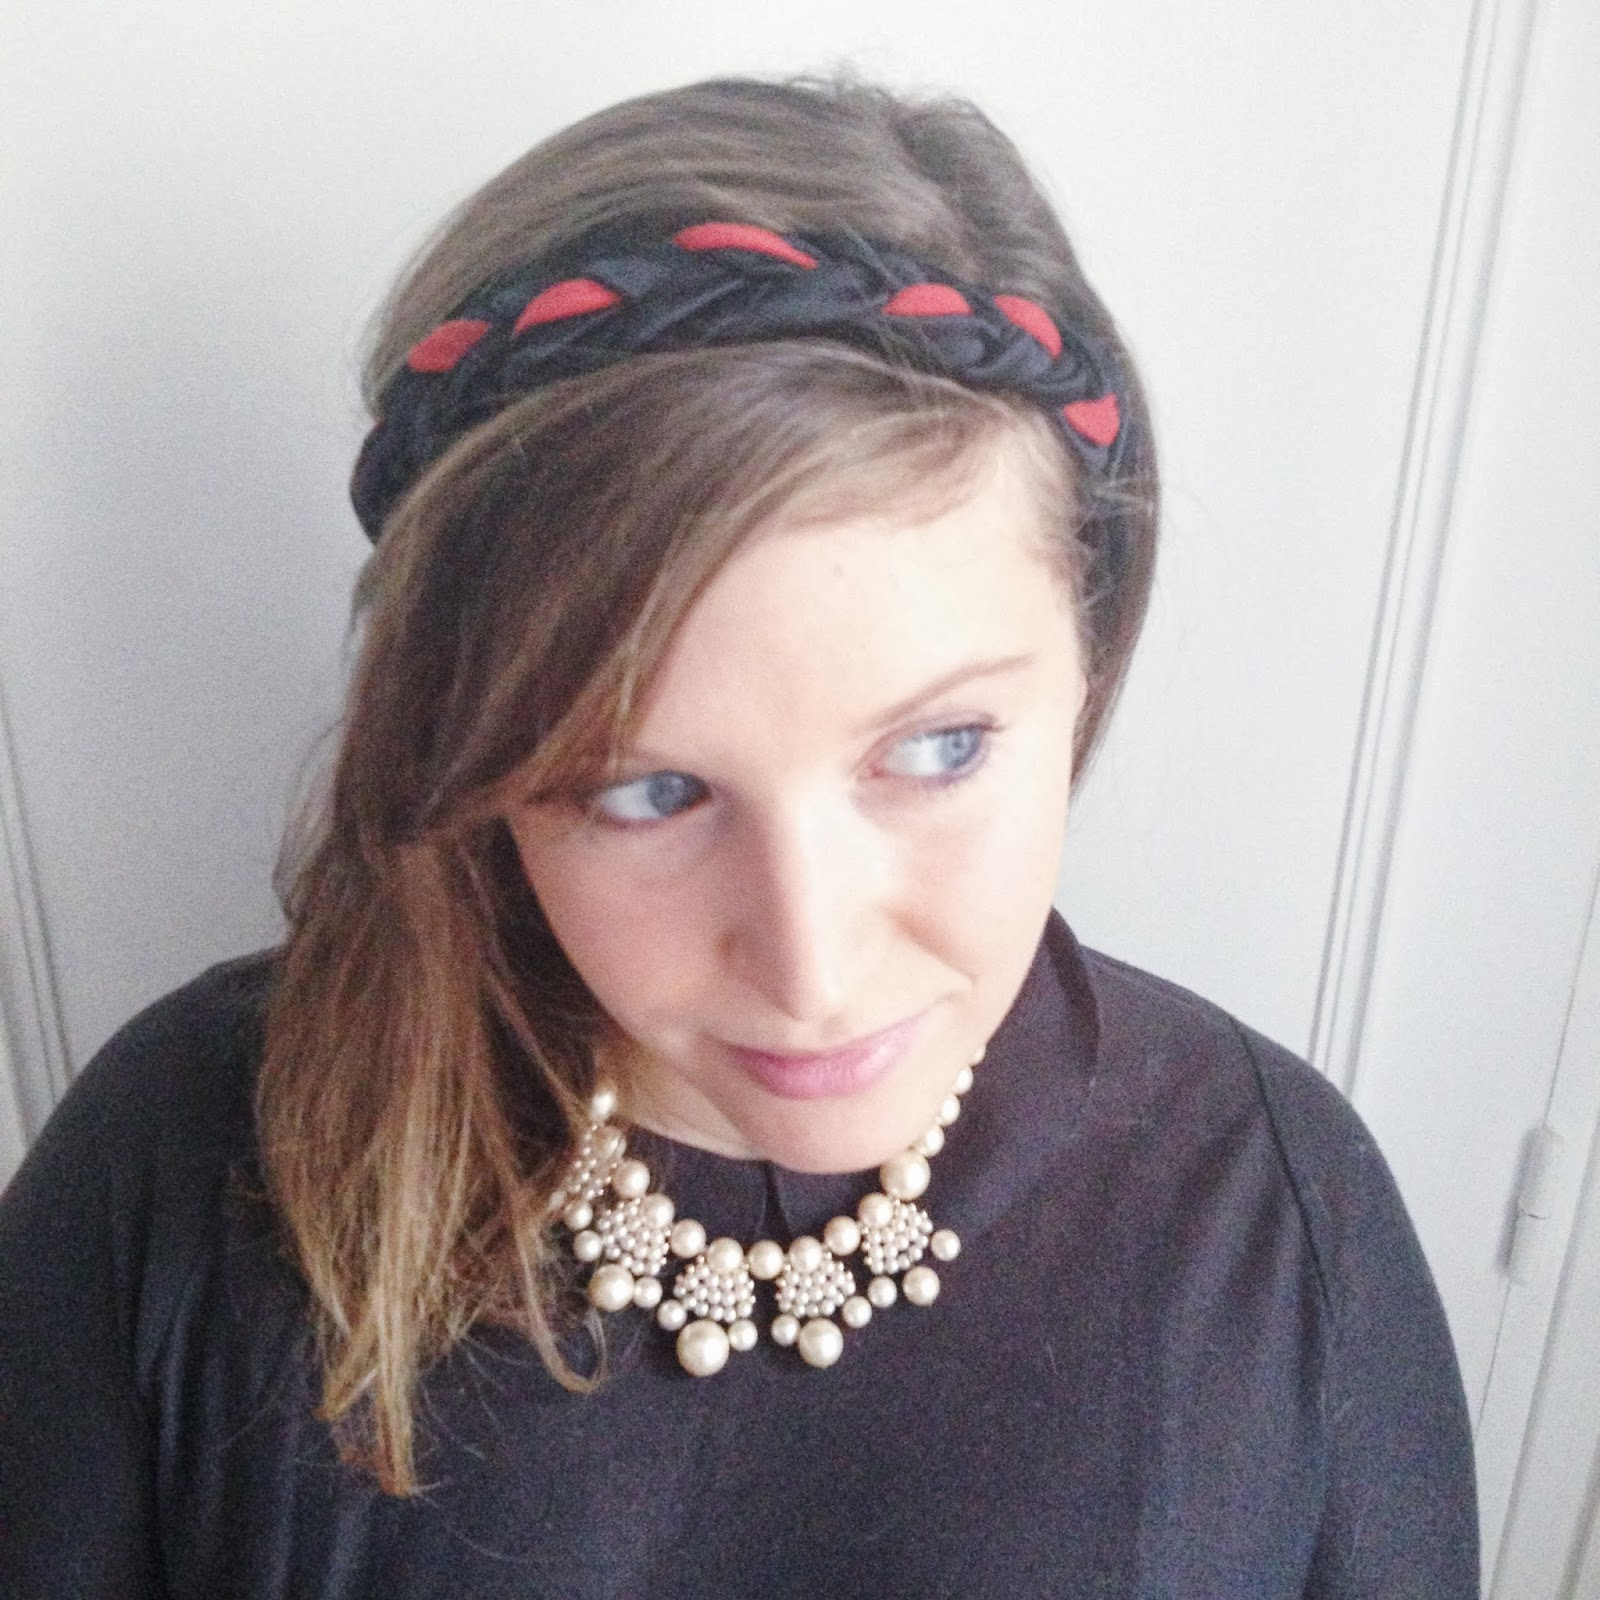 Headband, Bijoux de tête, Fashion, Adeli Paris, Made in France, Maud Factory